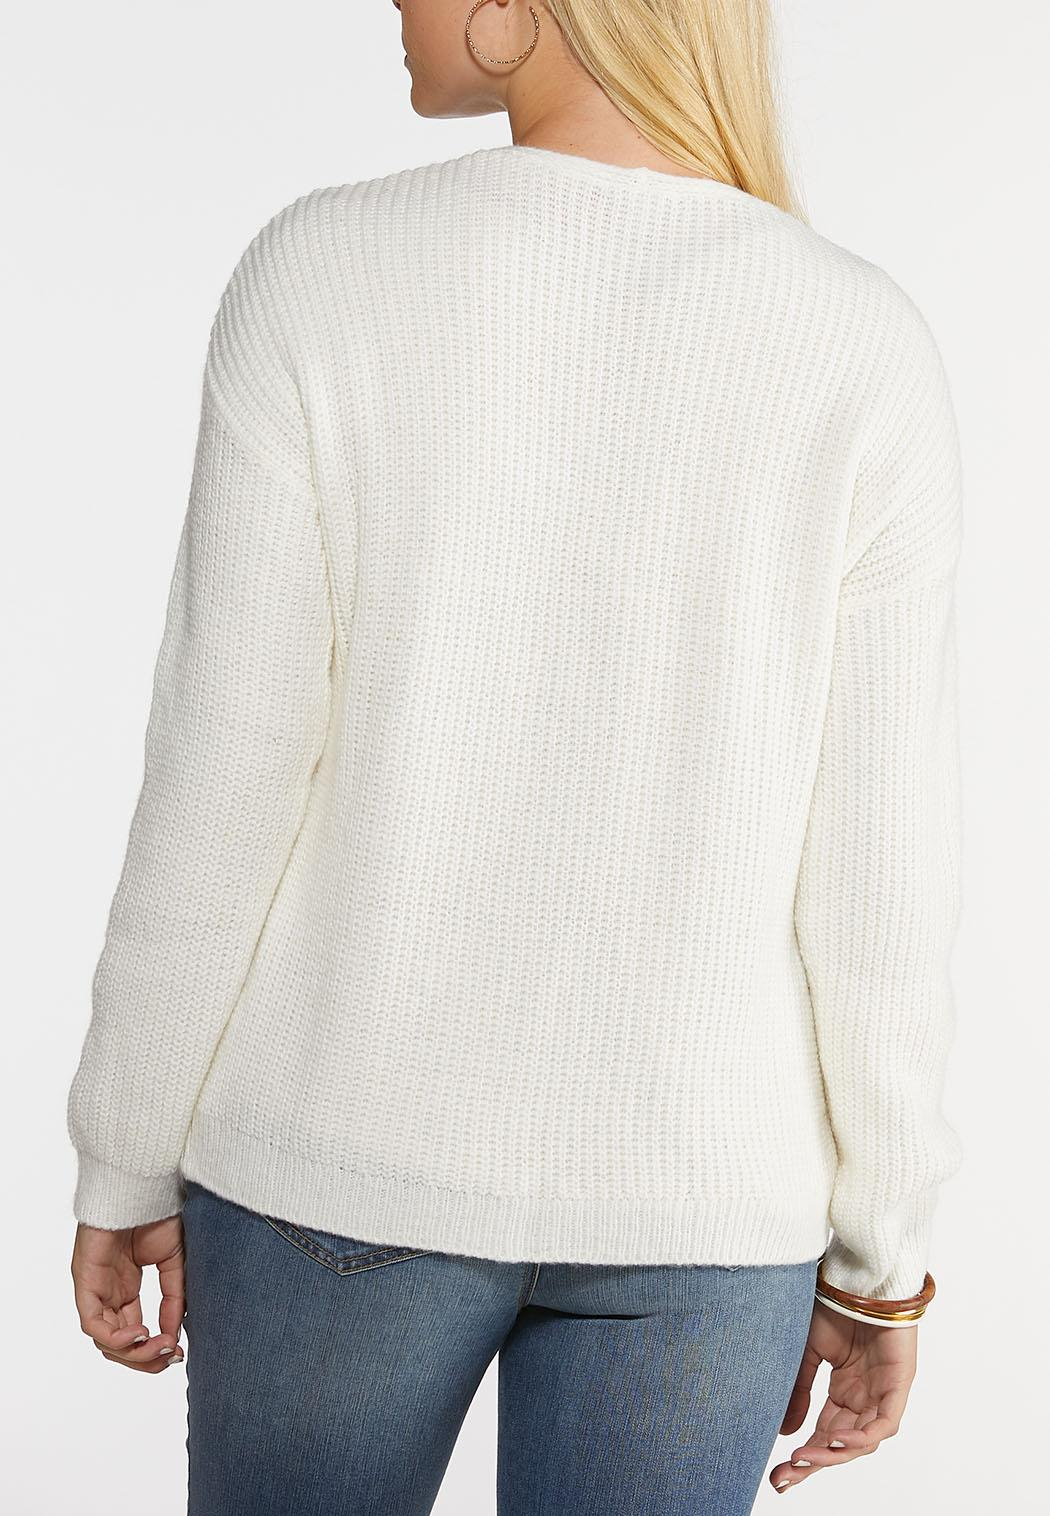 Front Pocket Cardigan Sweater (Item #44027498)